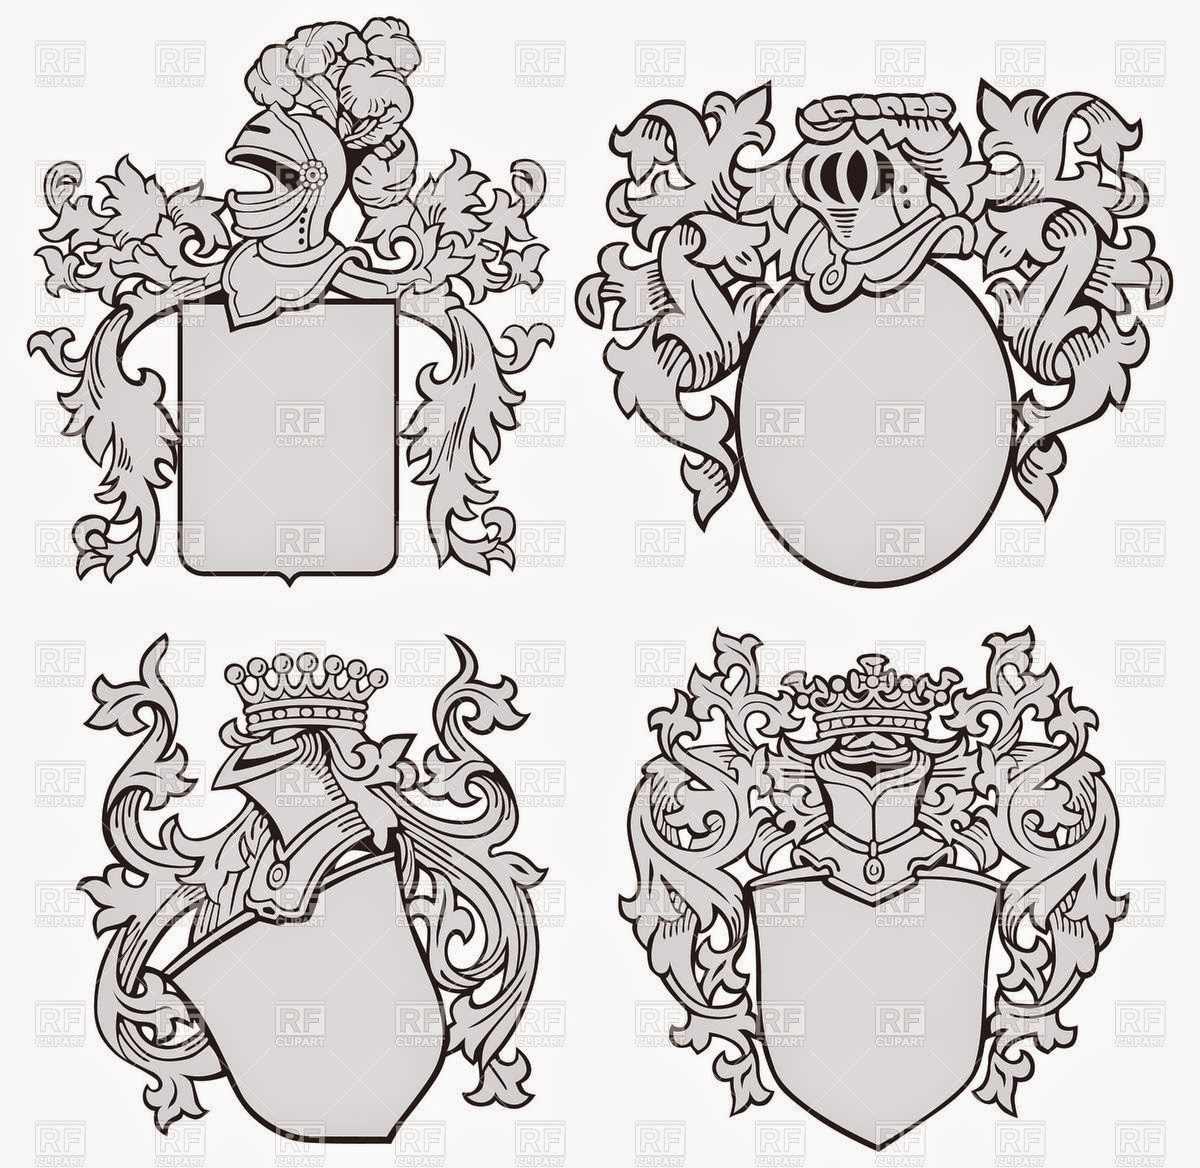 63 Best Coat Of Arms Images